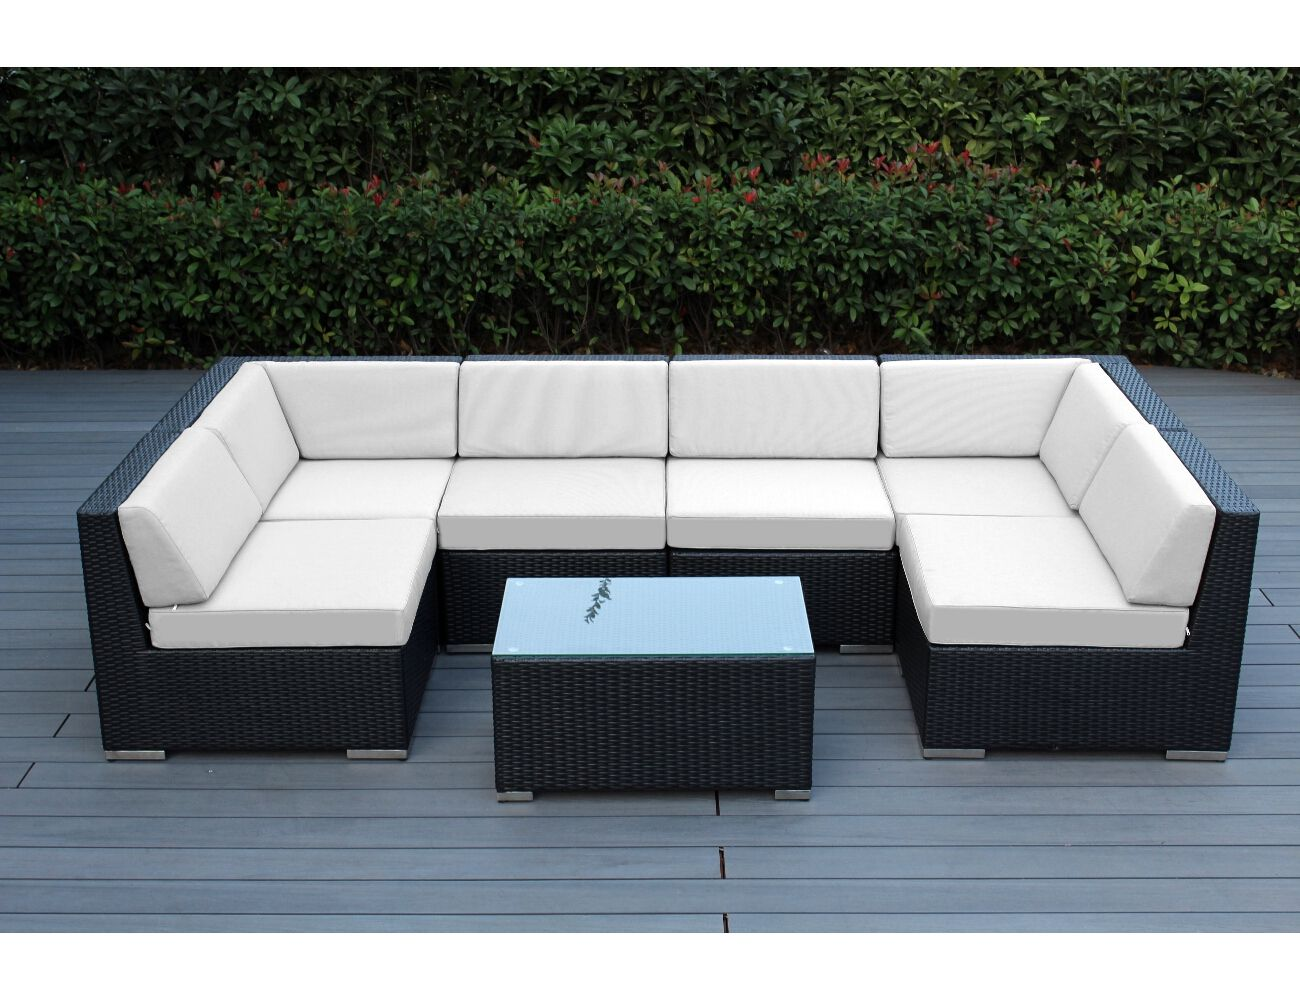 sunbrella natural white with black wicker ohana deep seating